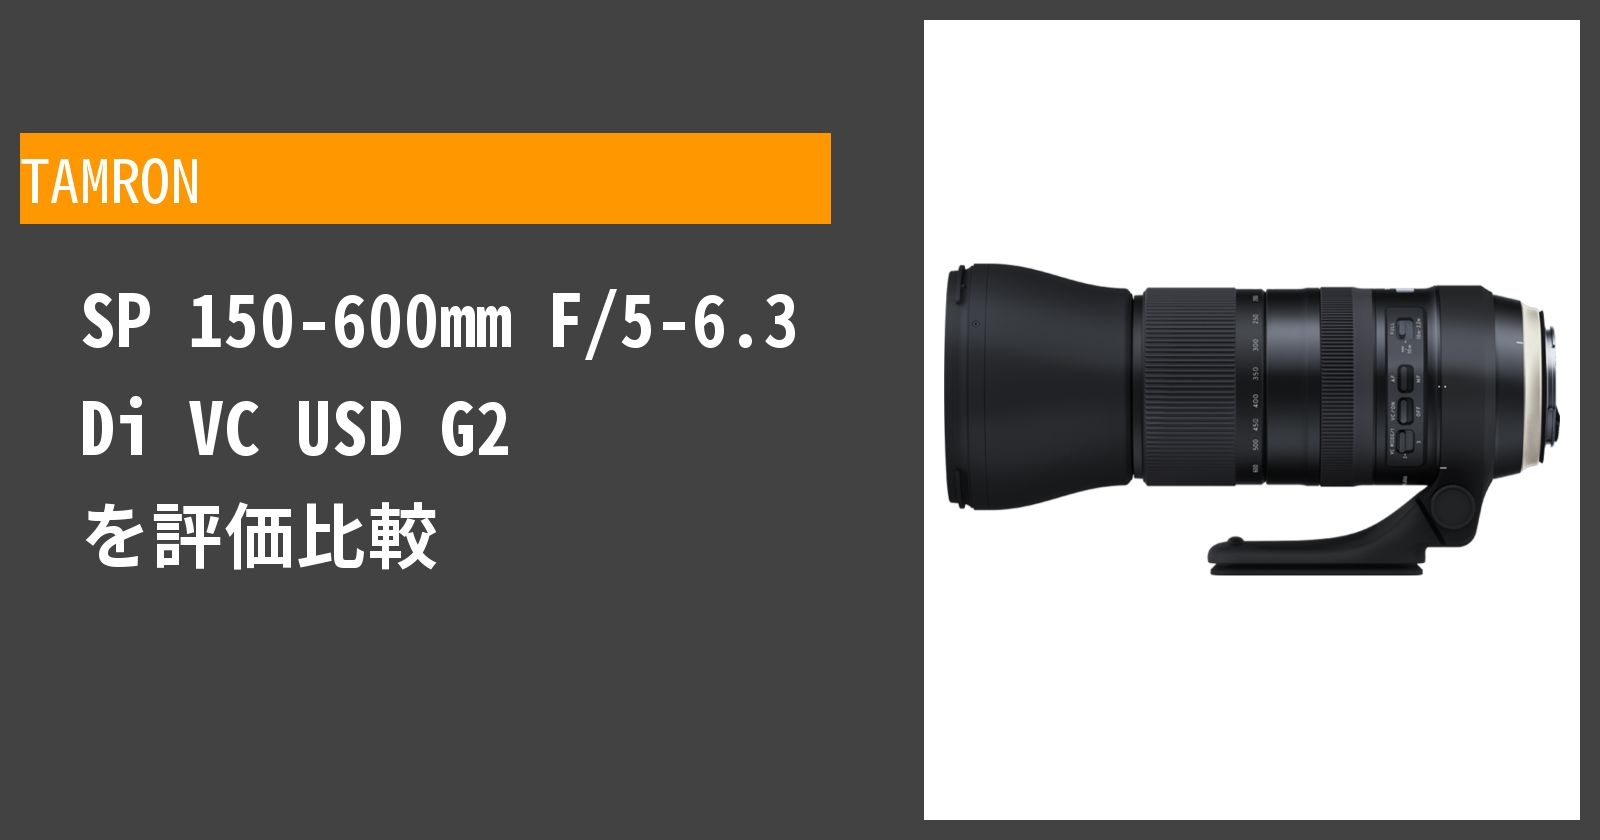 SP 150-600mm F/5-6.3 Di VC USD G2を徹底評価